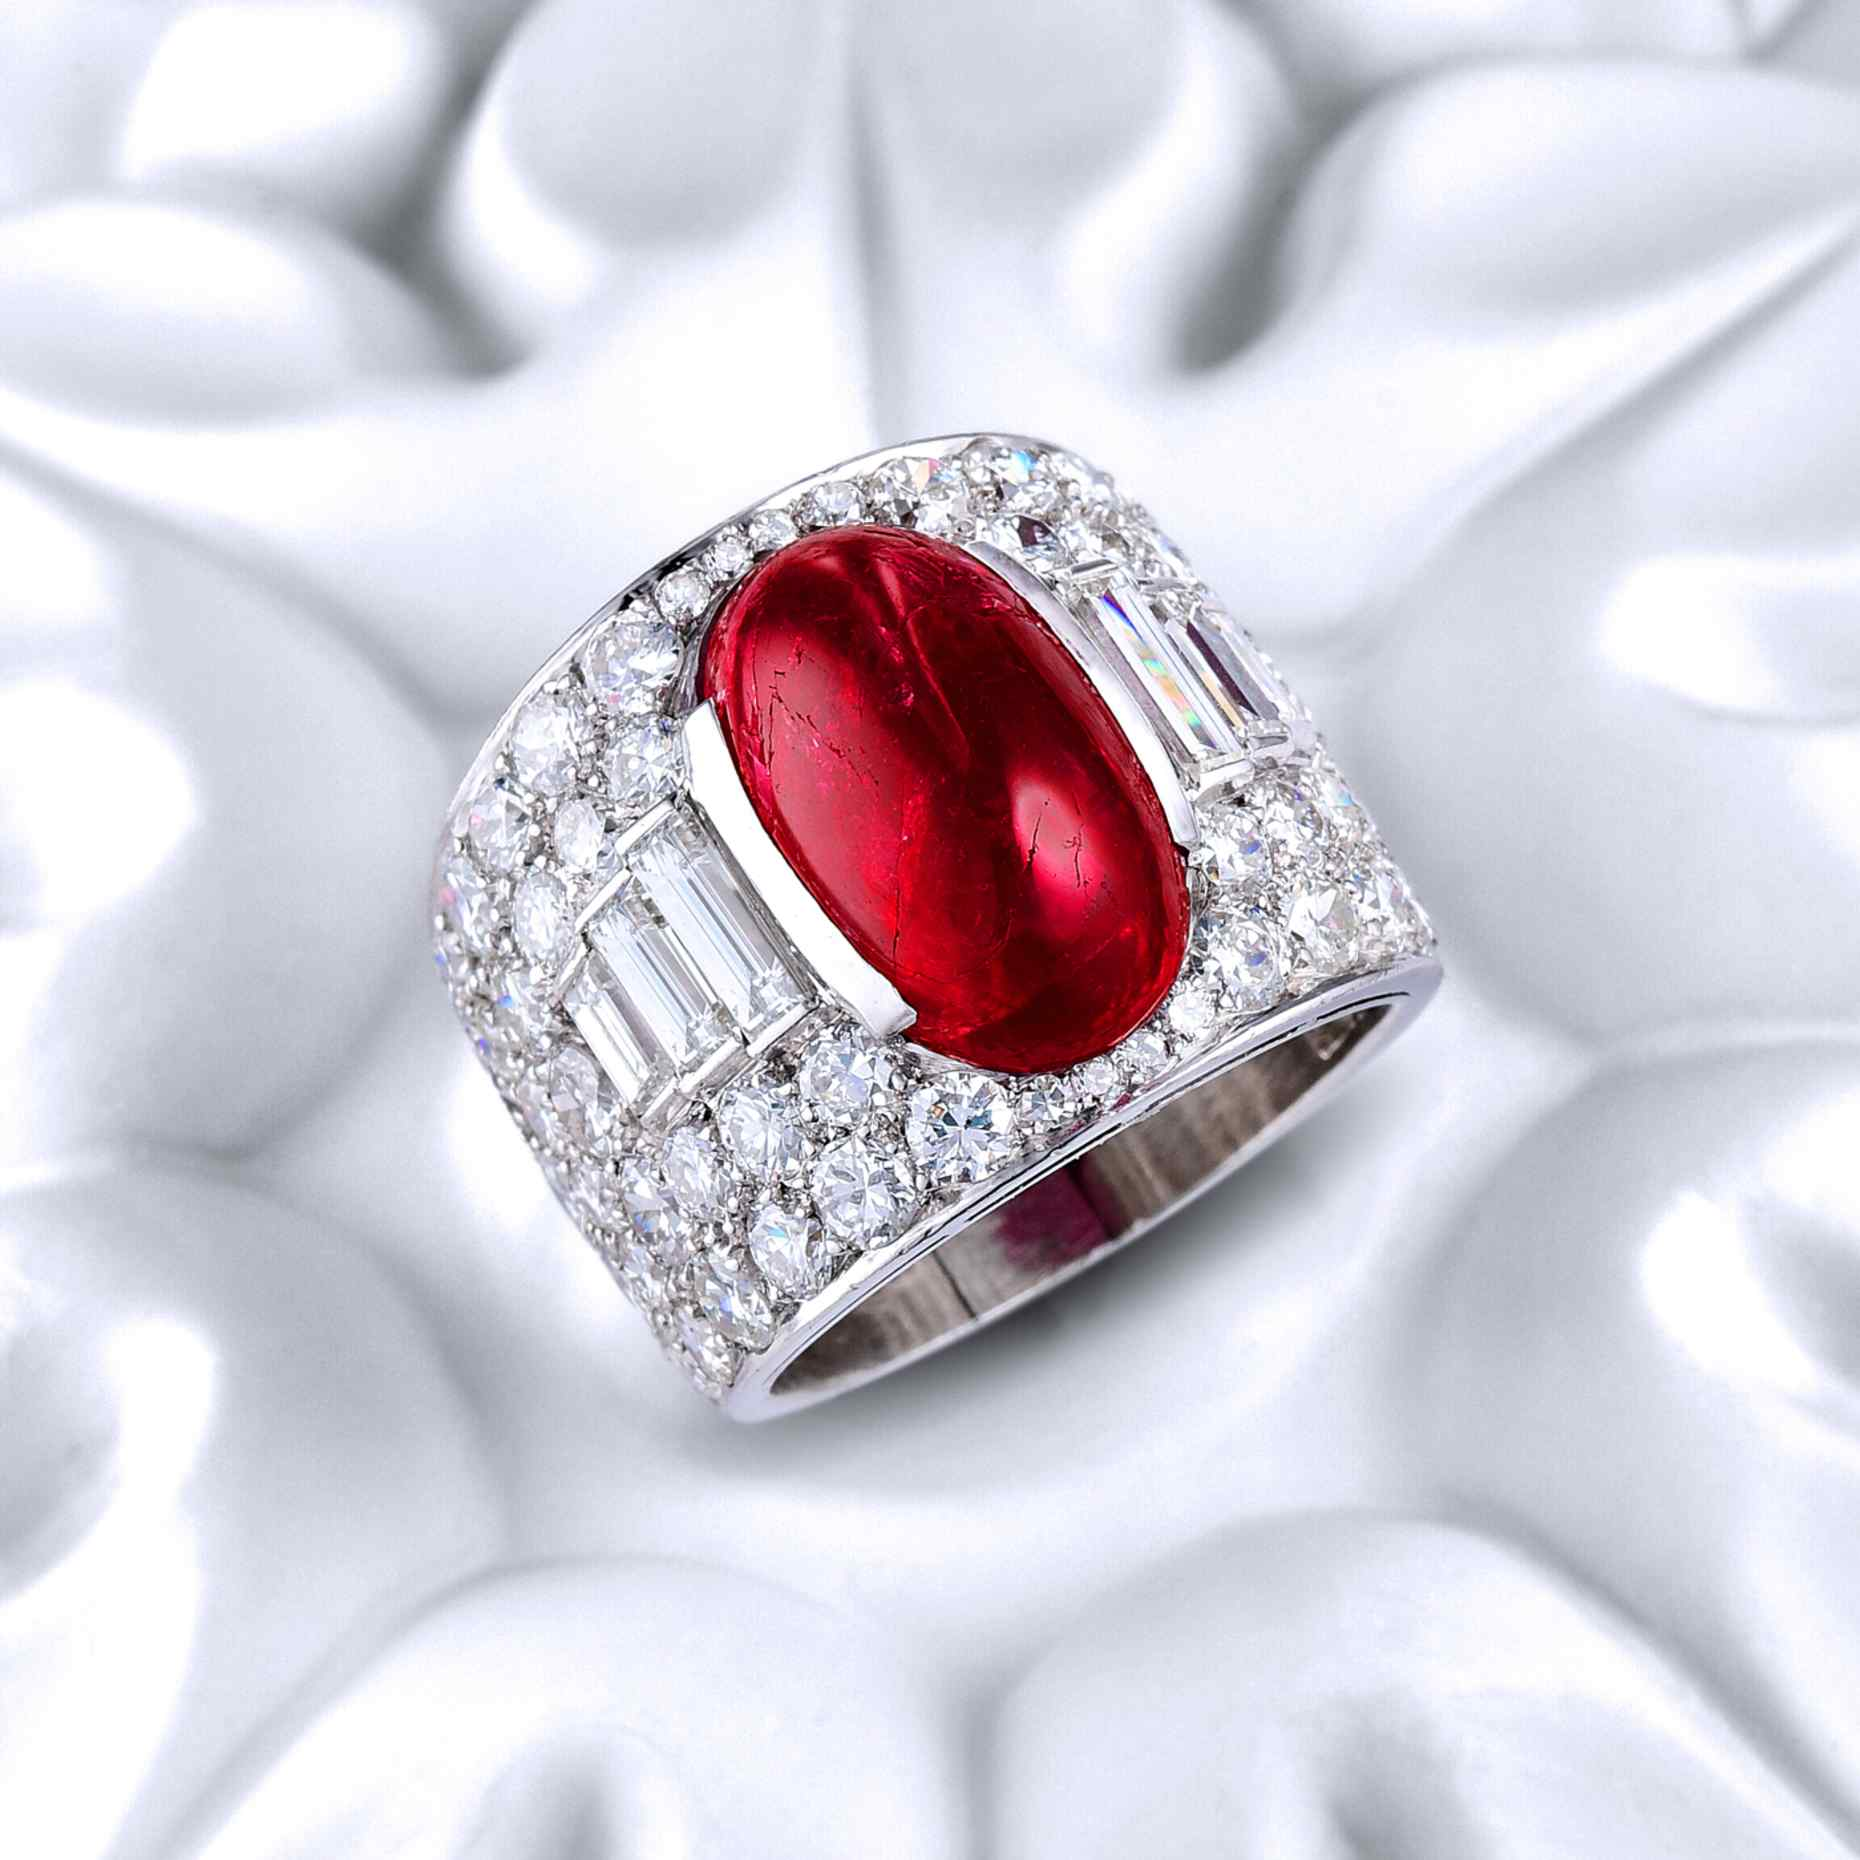 Bulgari Burmese Ruby Trombino Ring- Fortuna in How to Spend It